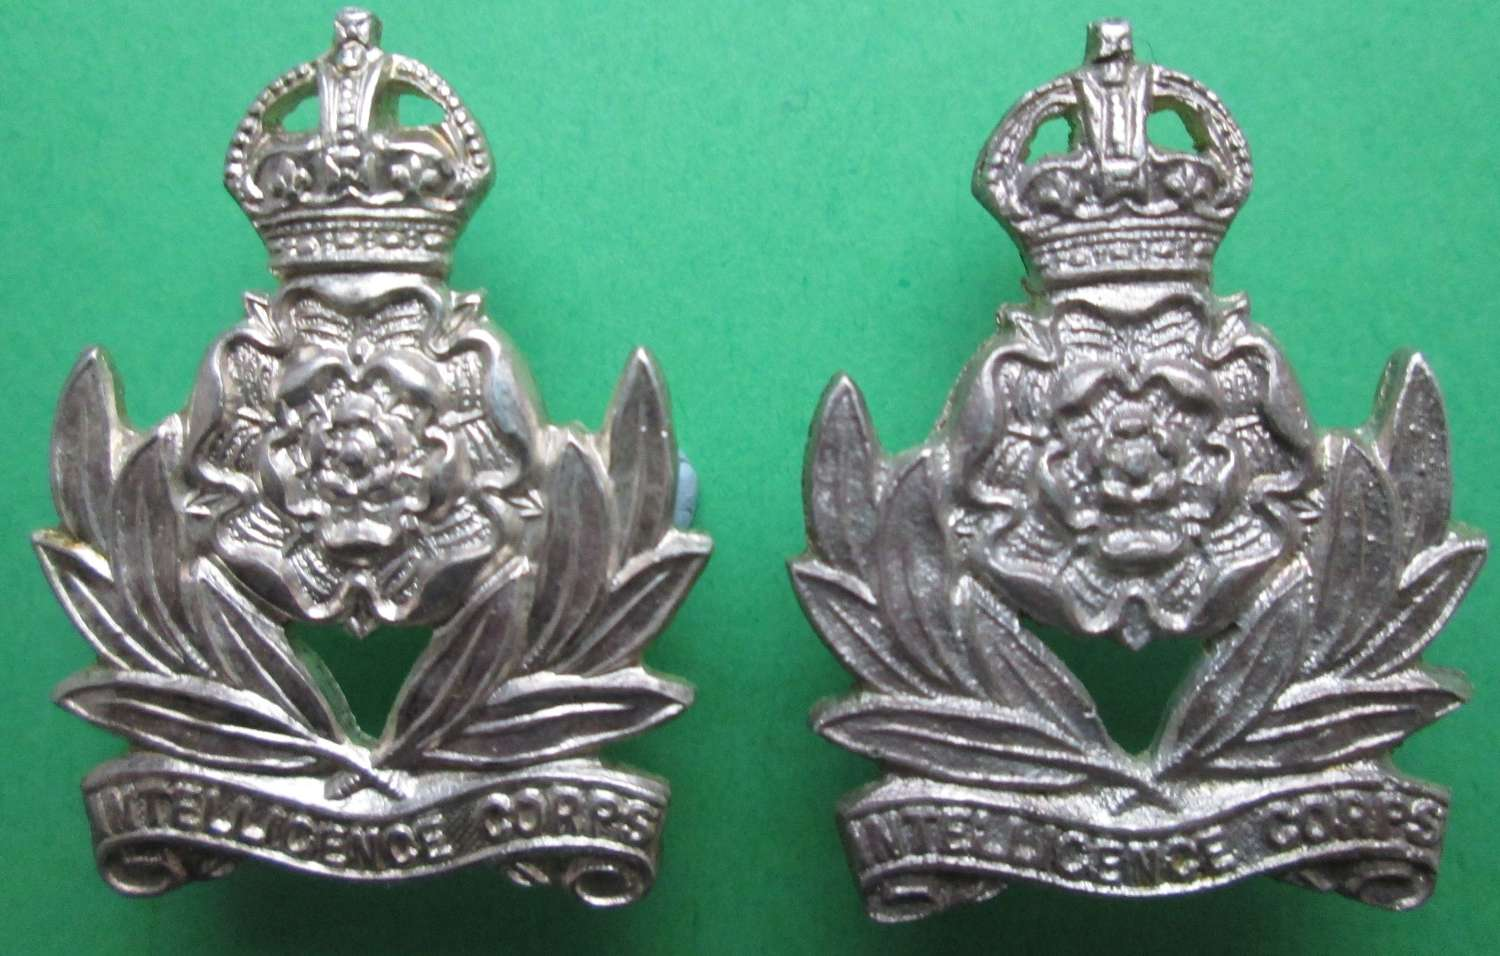 A PAIR OF SILVER INTELLIGENCE CORPS COLLAR DOGS